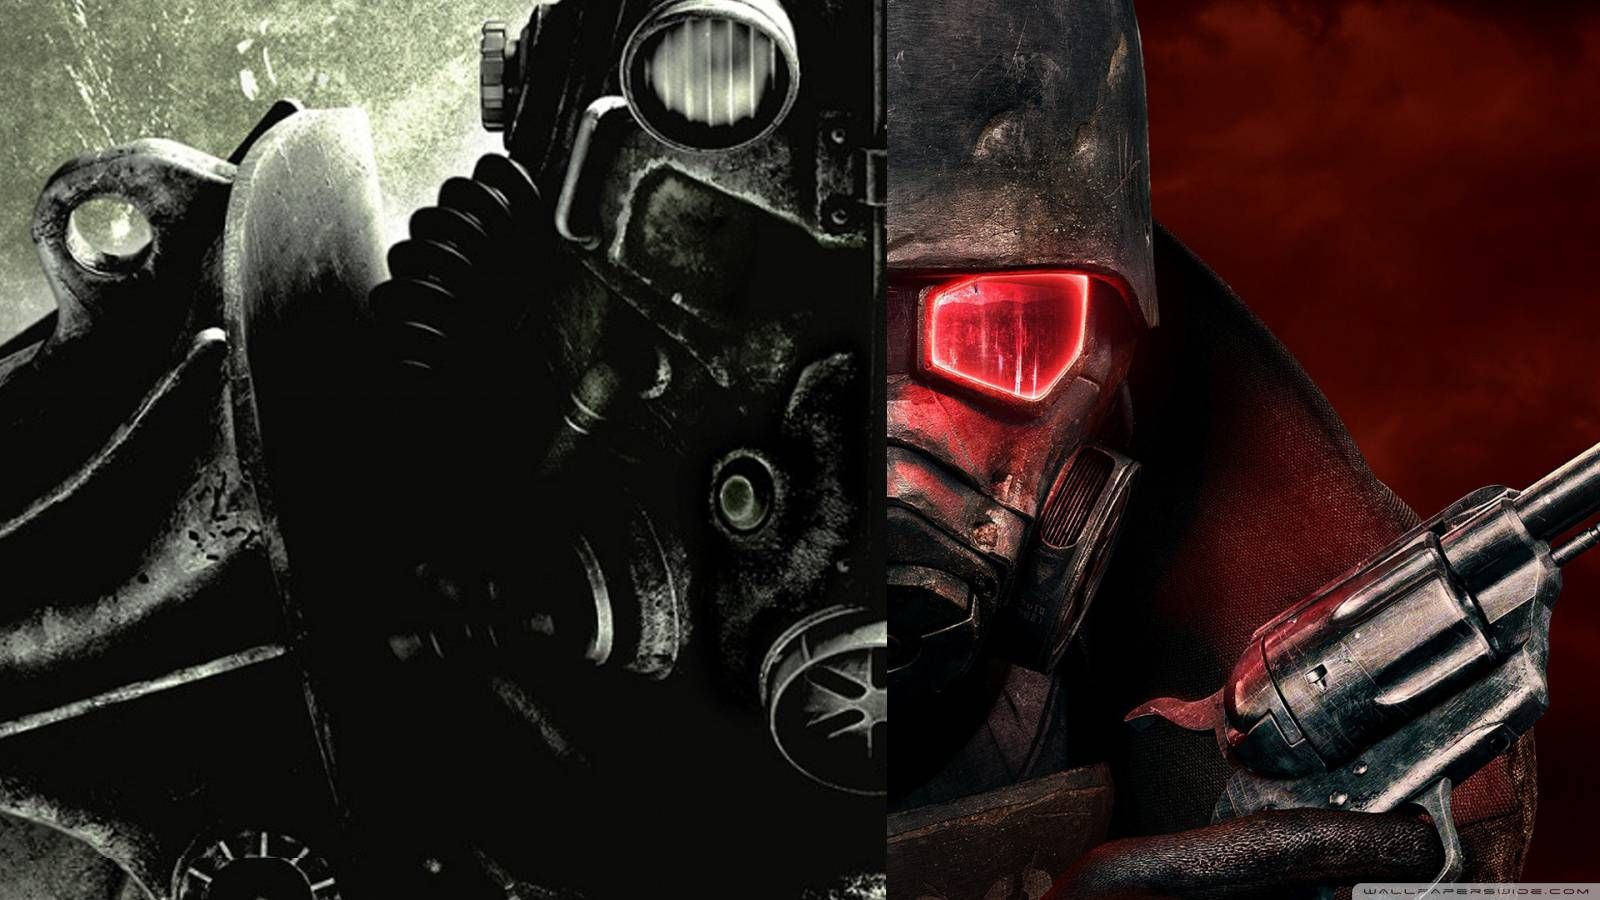 Fallout New Vegas Wallpaper iPhone (с изображениями)